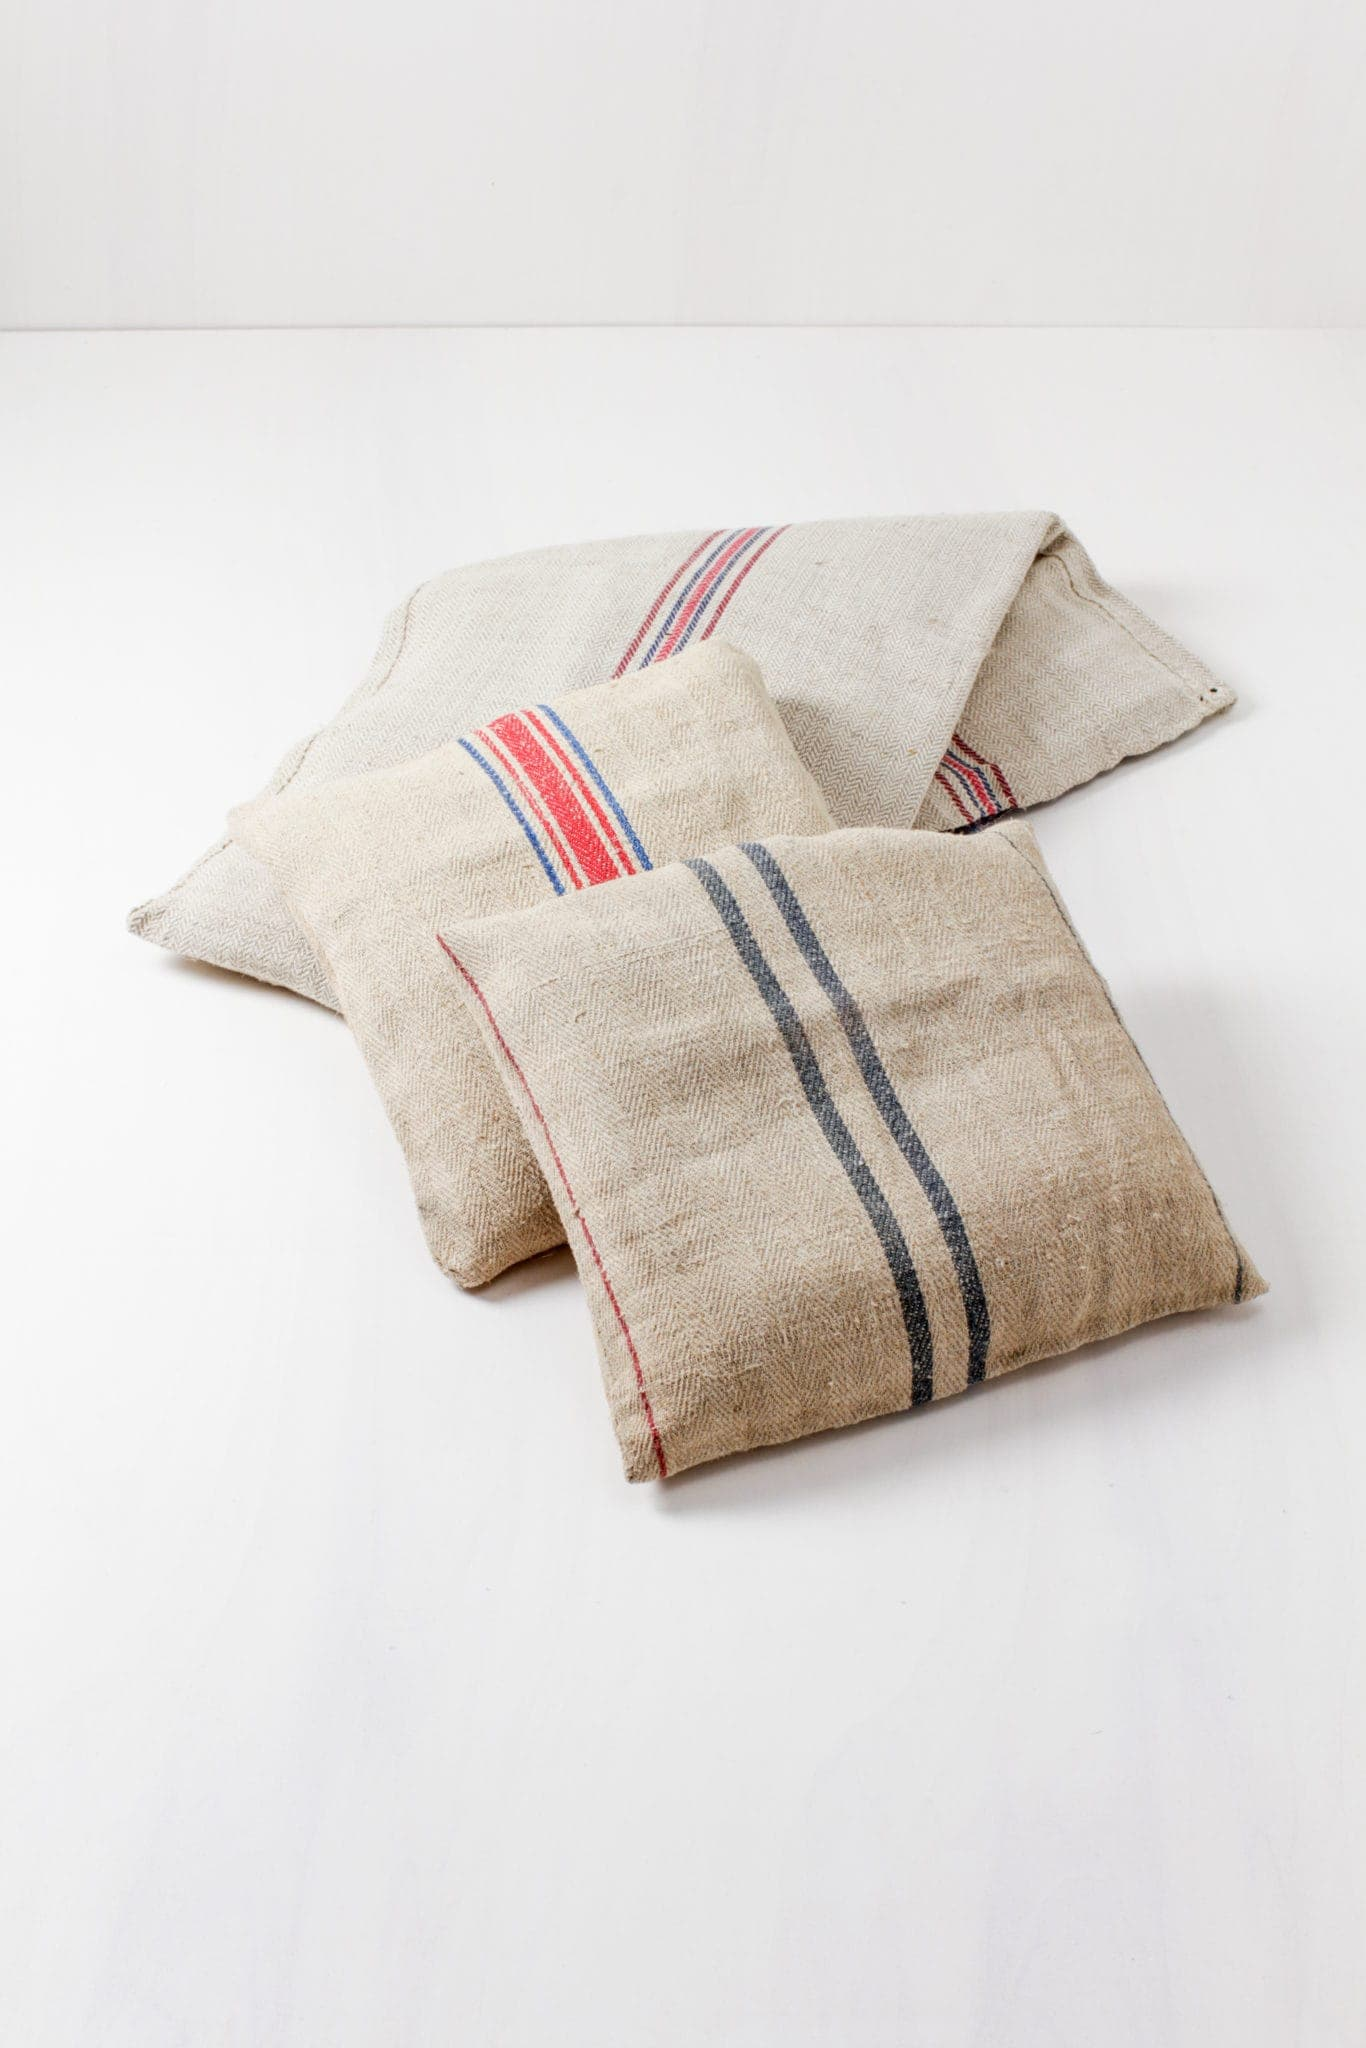 Farbe Radio Button | Vintage pillows, square-cut, various colours, for seating or decoration. |